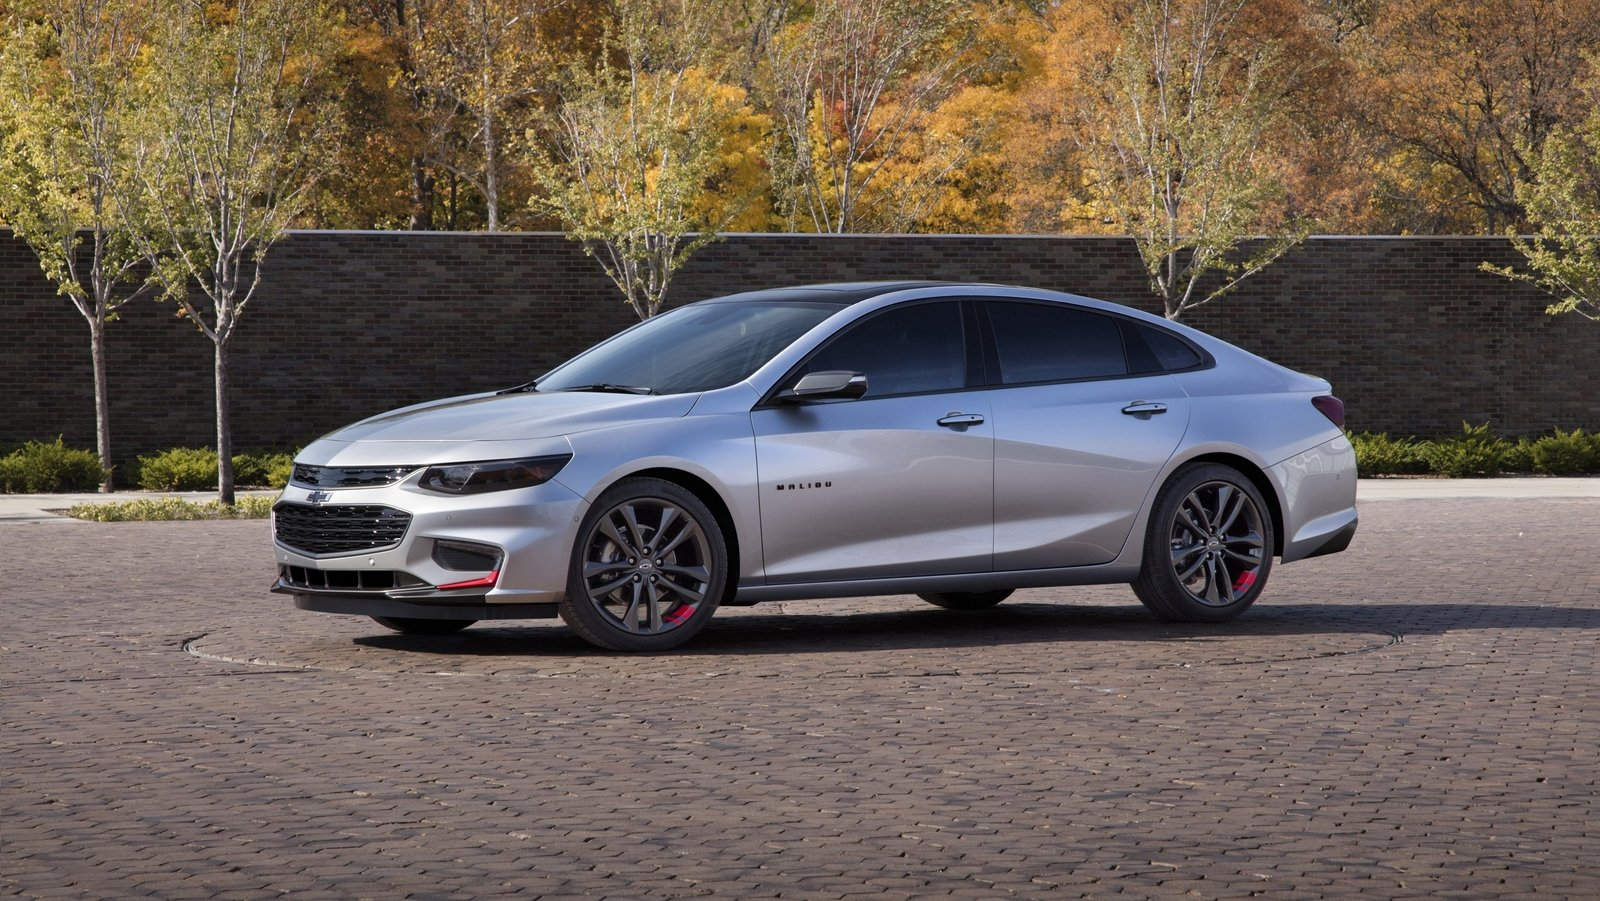 2016 chevrolet malibu red line series concept picture 652350 car review top speed. Black Bedroom Furniture Sets. Home Design Ideas